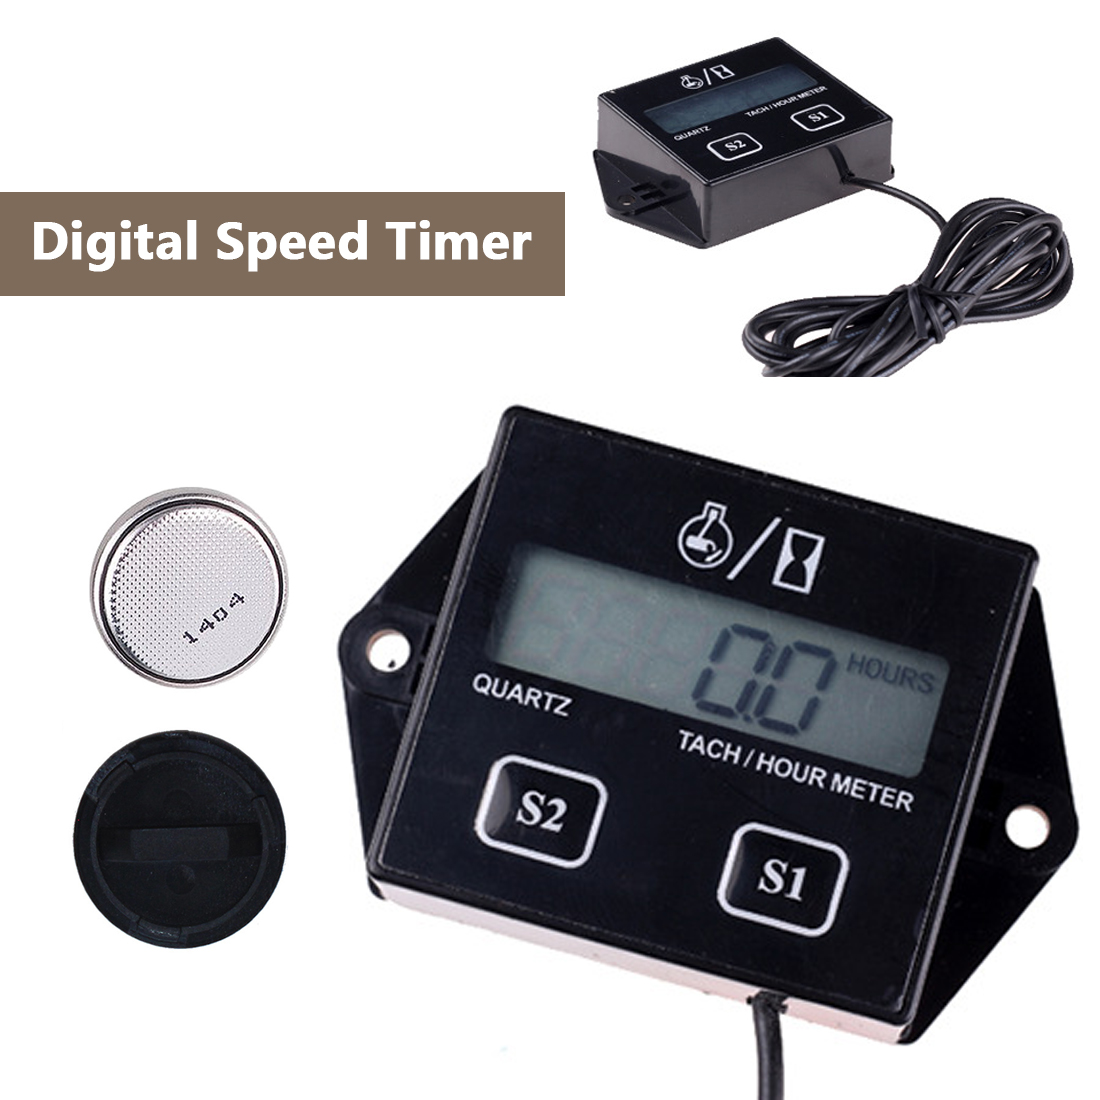 Digital Tachometer Engine Tach Hour Meter Gauge Inductive For Motorcycle Motor Boat Car Stroke Engine LCD Display Removable Batt